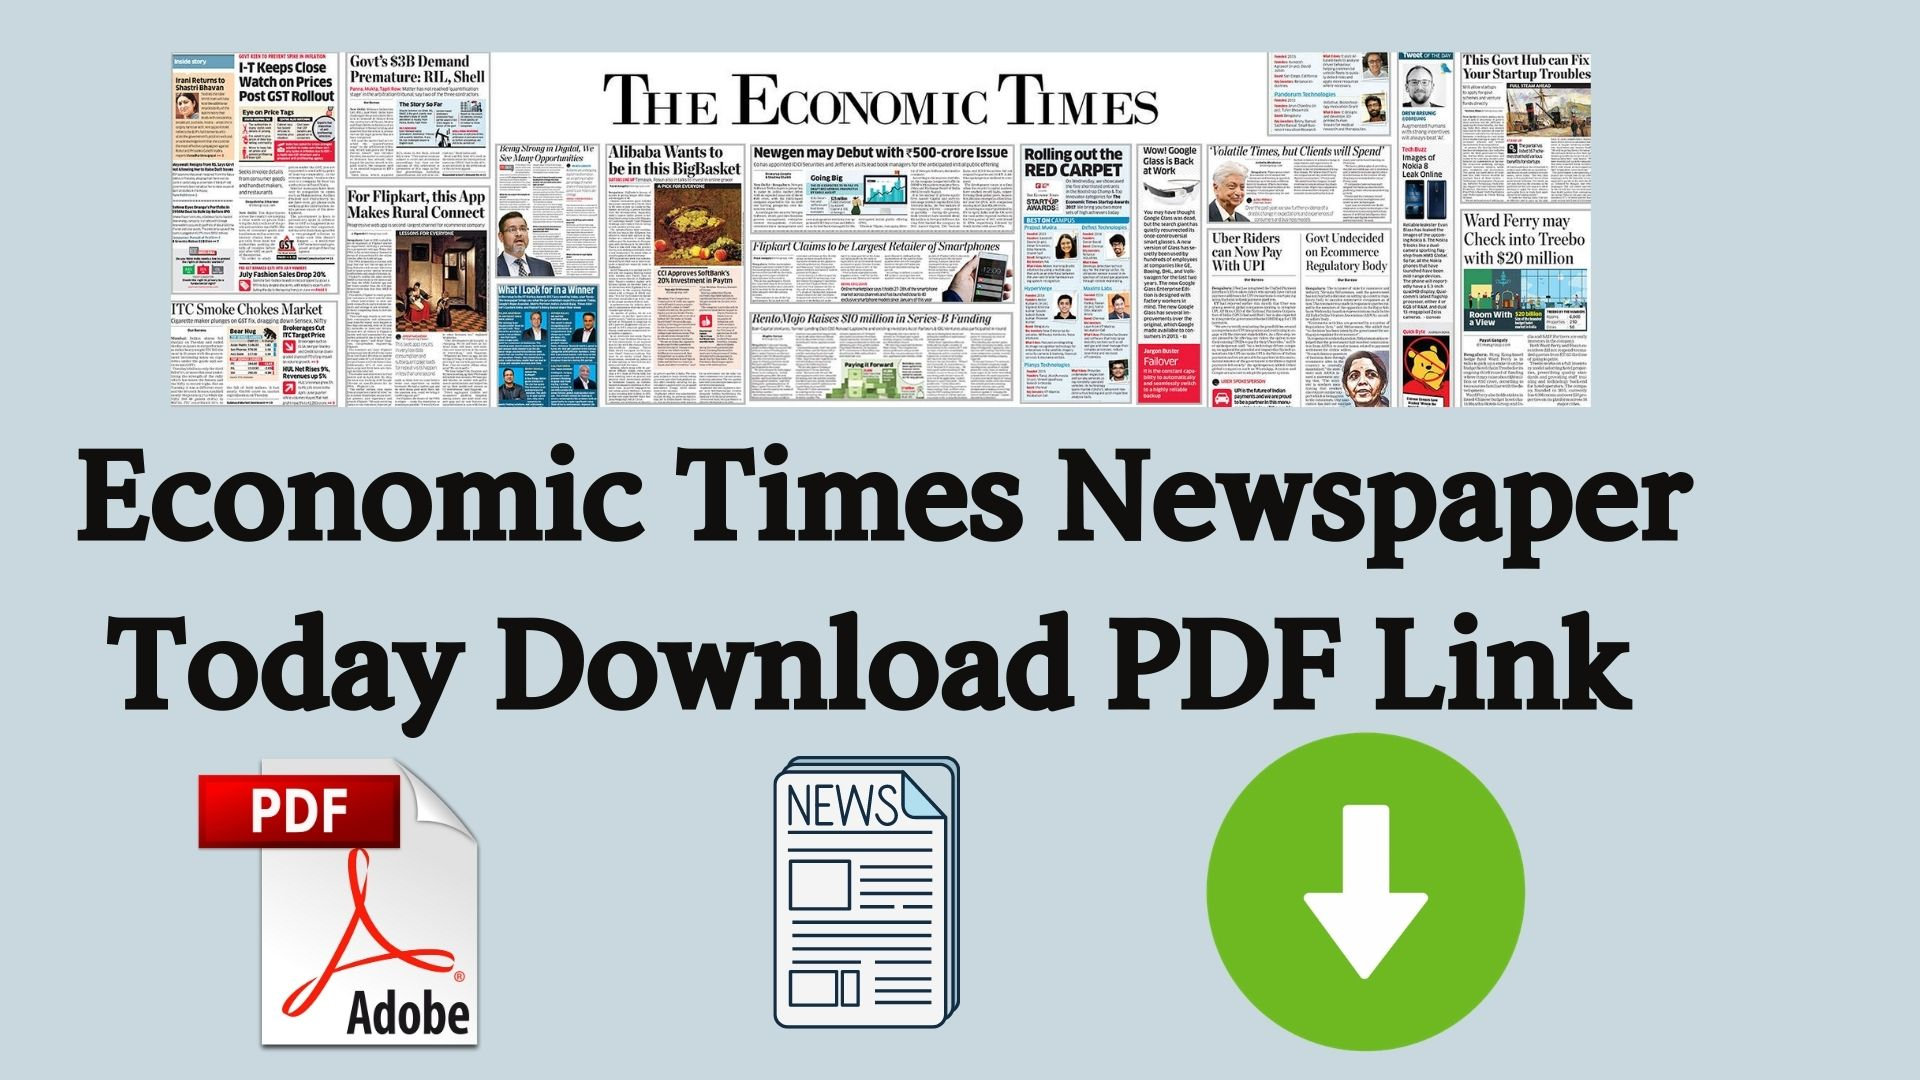 Economic Times Newspaper Today Download PDF Link